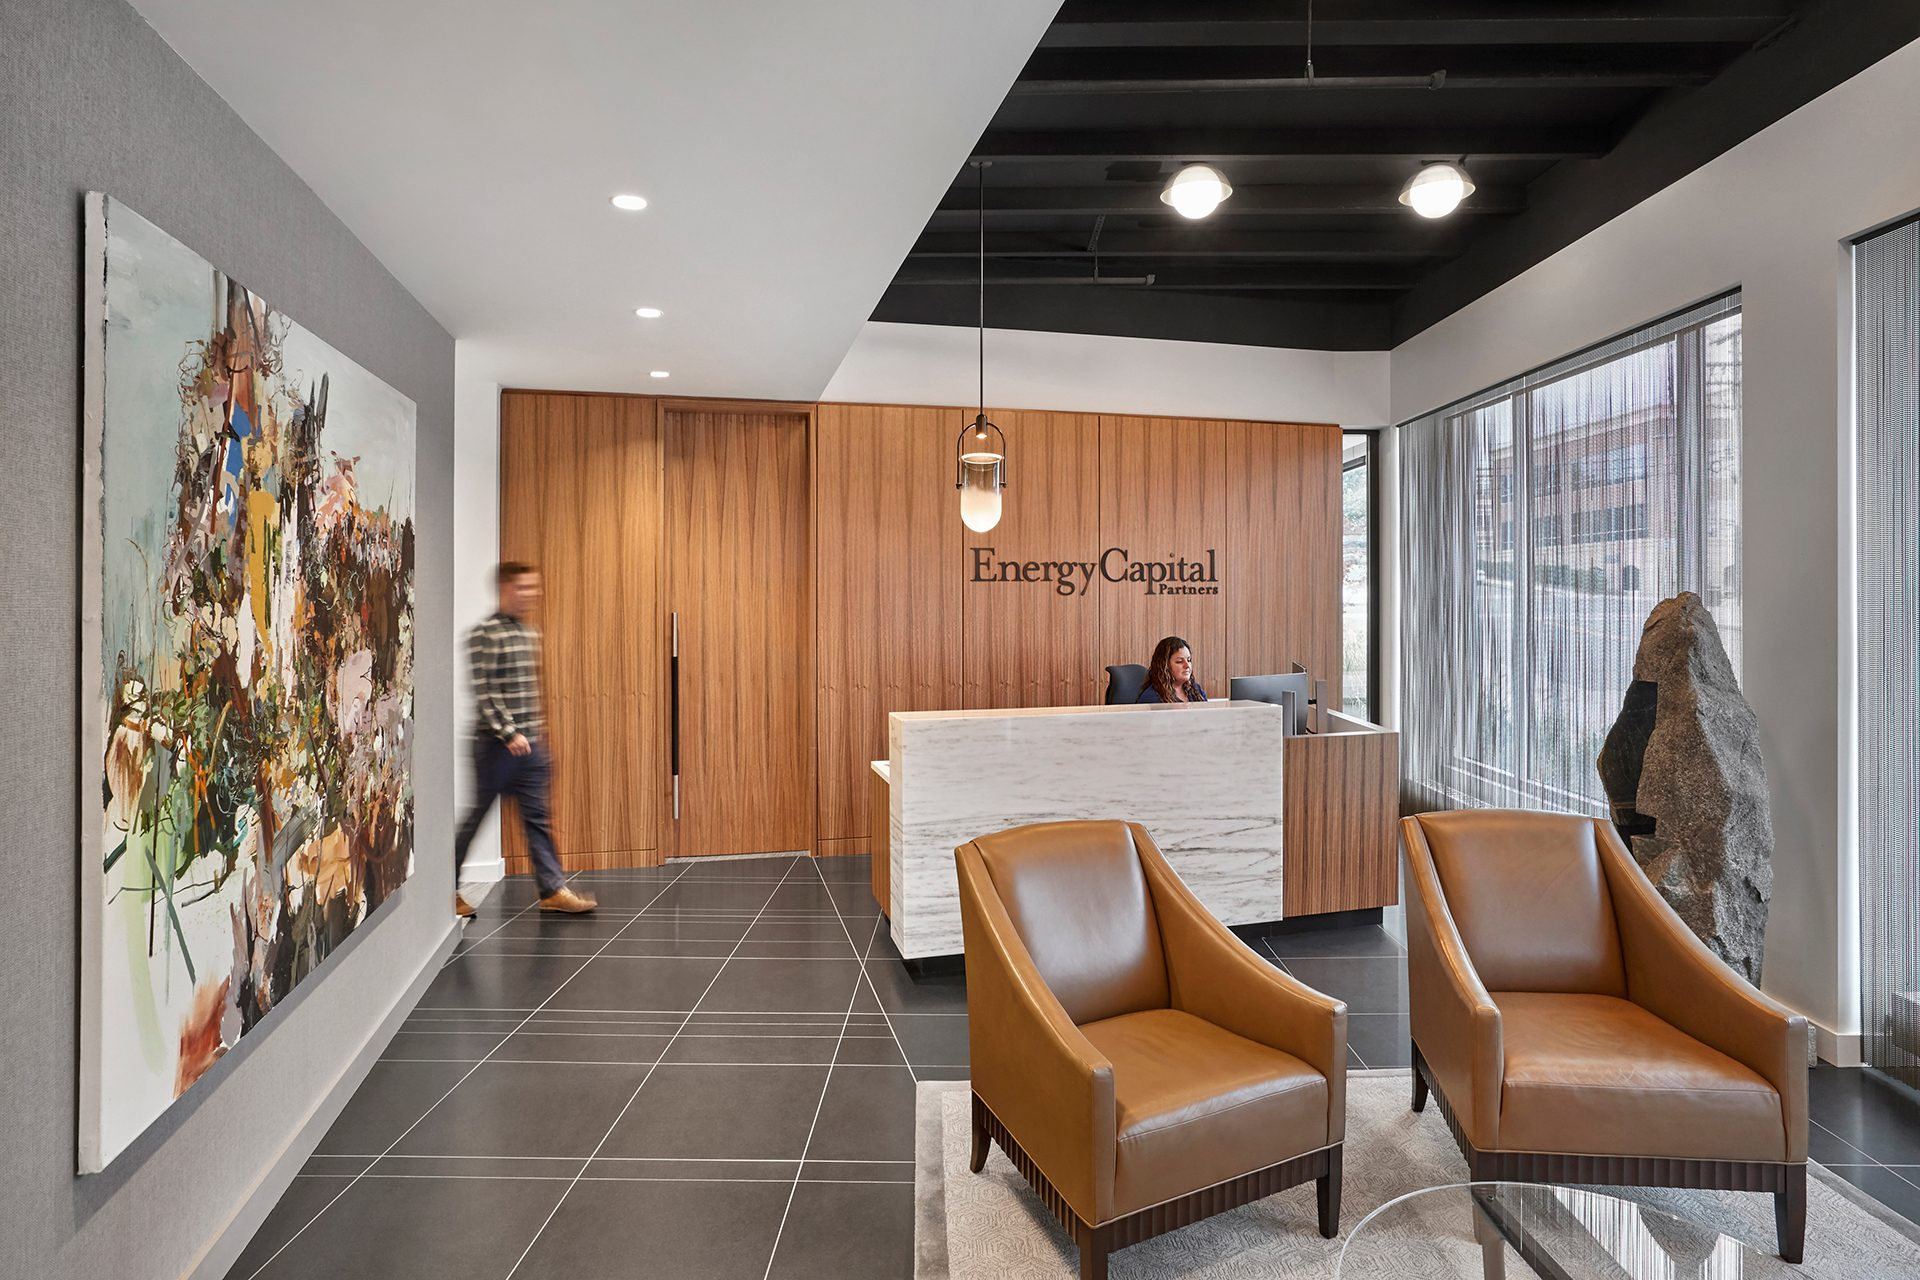 Energy Capital Partners (ECP) reception space